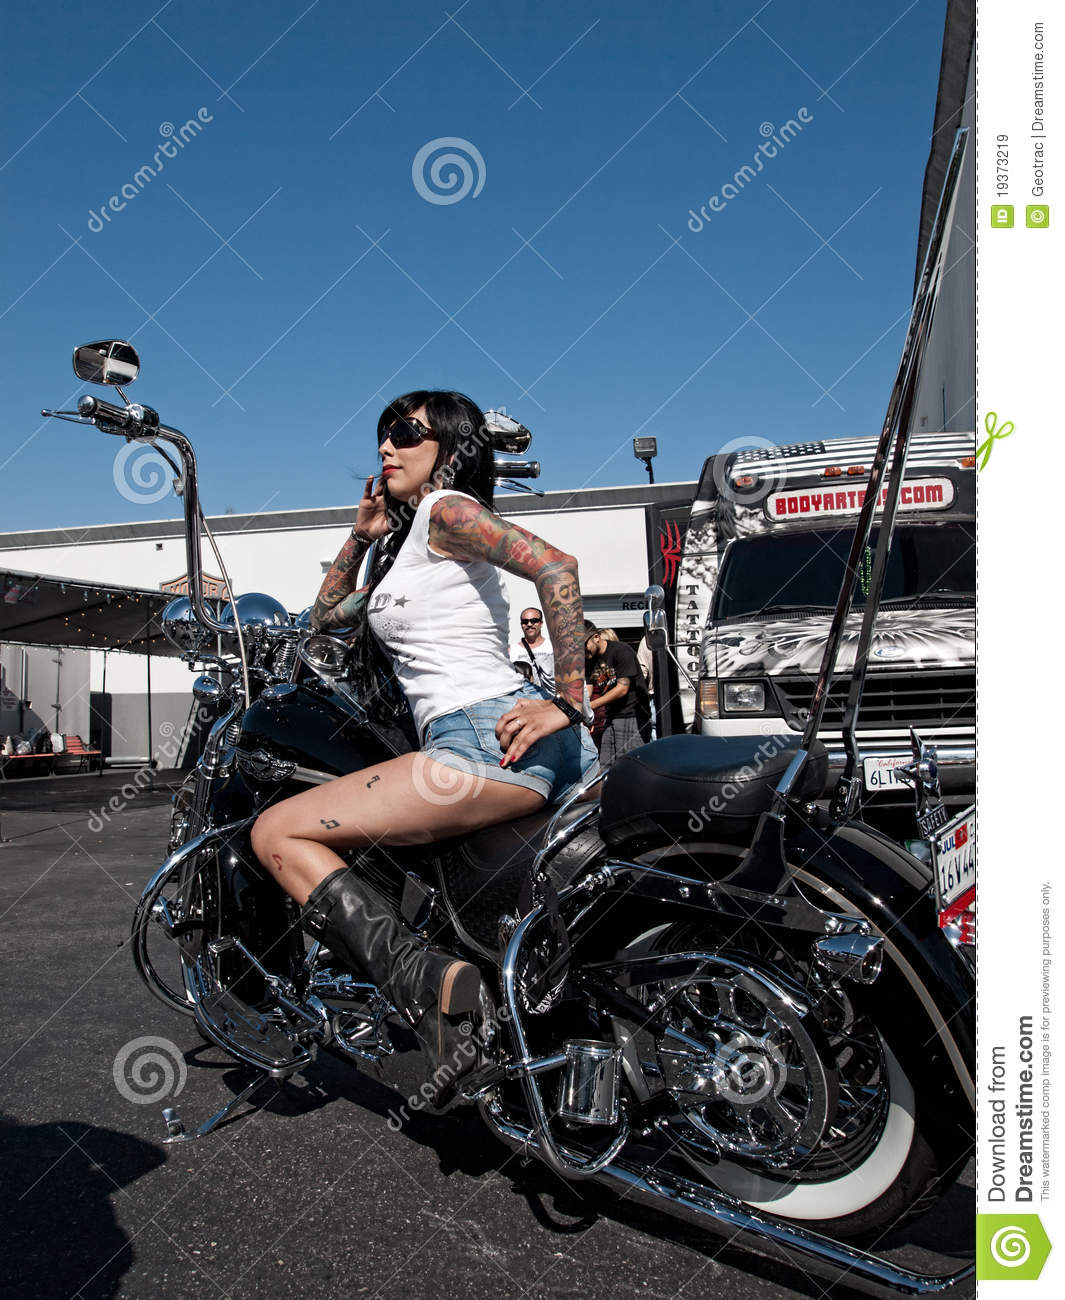 Biker Girl Wallpaper Free Download Customized Harley Davidson Motorcycle Editorial Stock